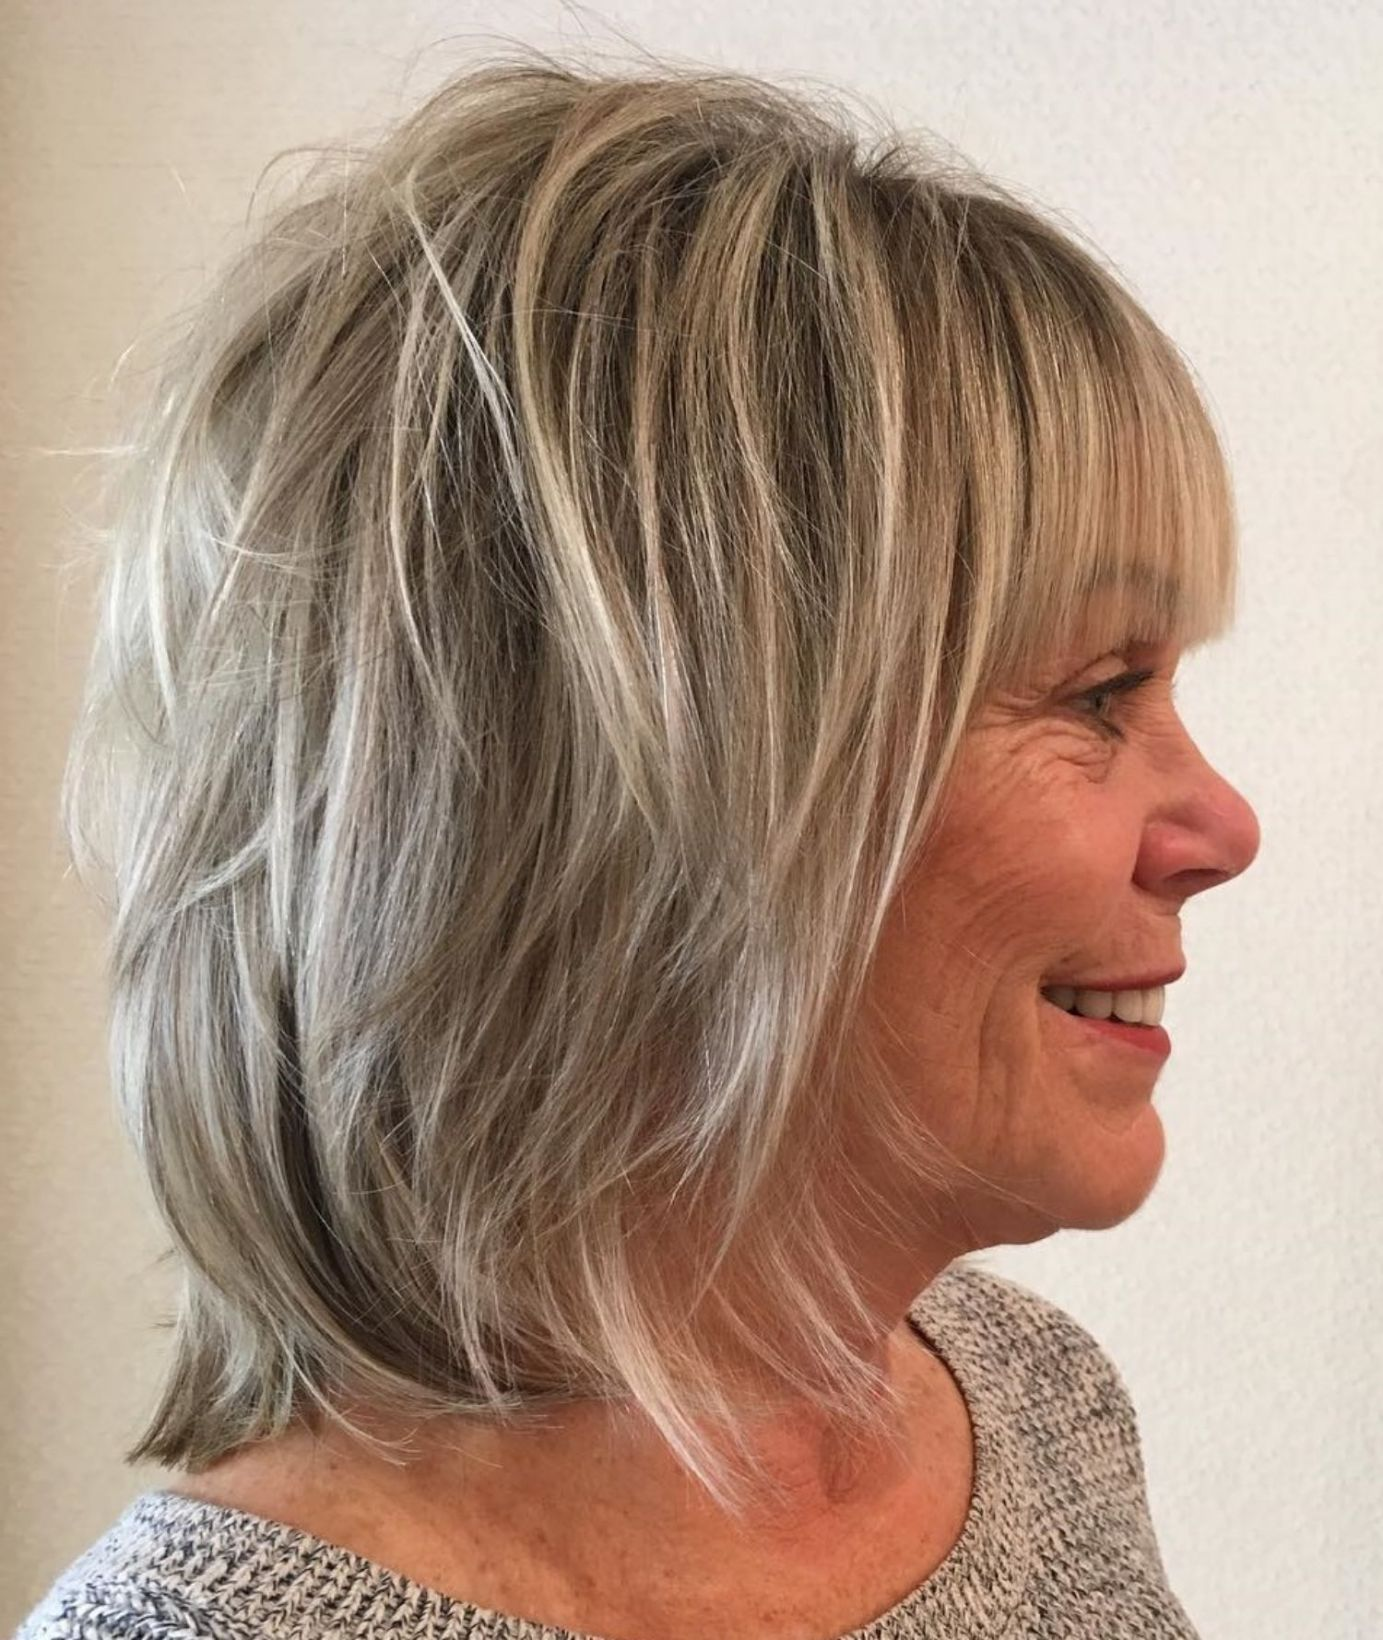 Look Fresh with Short Layered Haircuts for Older Women (Updated 2021) 0c2fa6891d49dae22462387a6f54b978